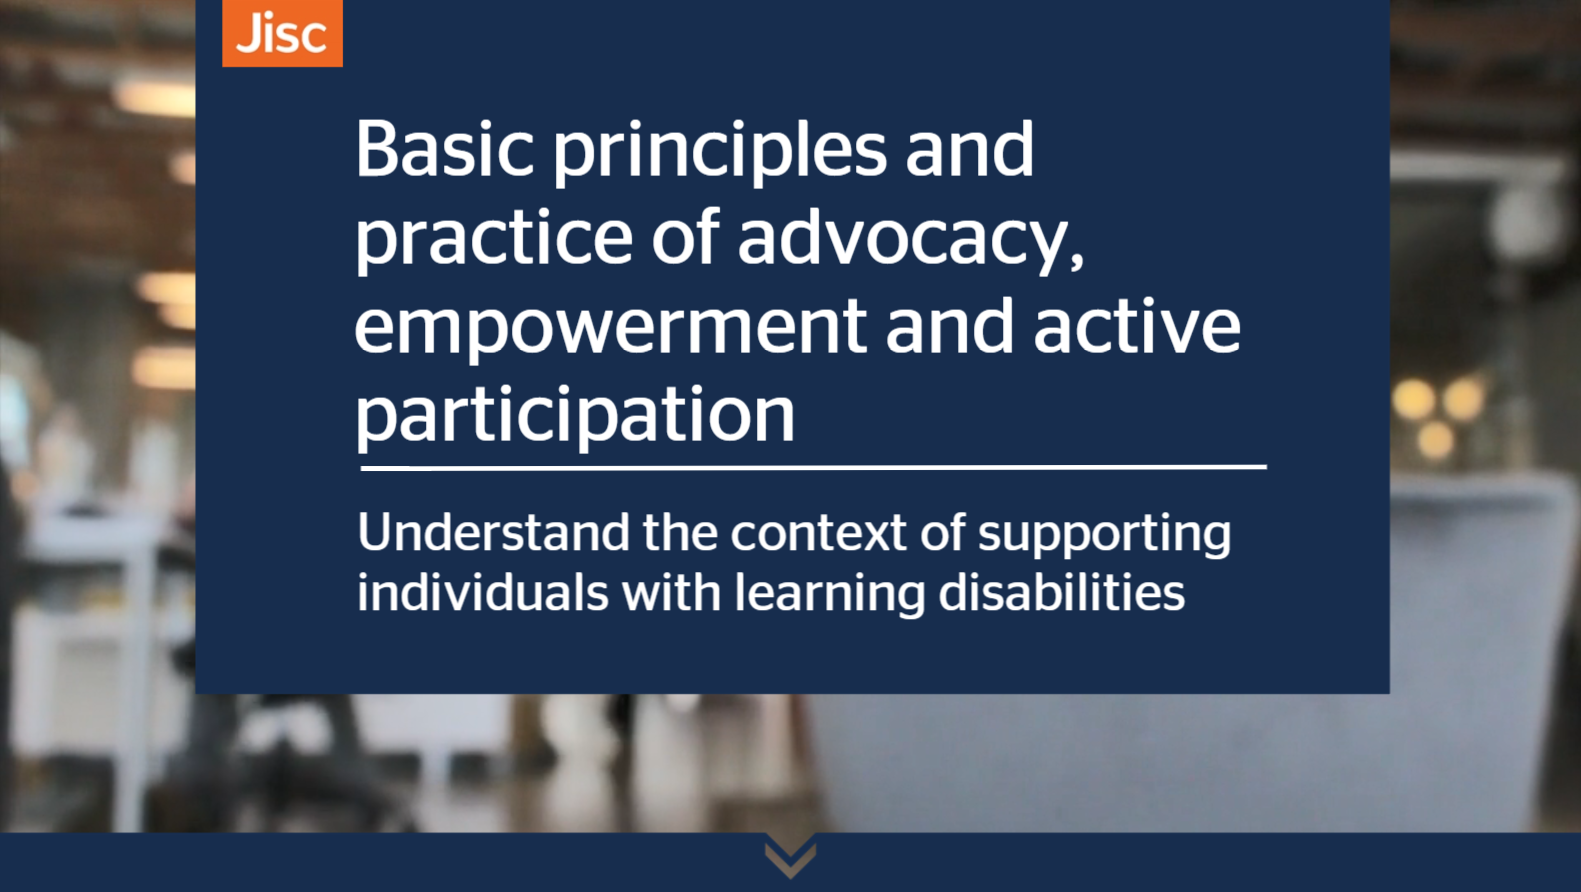 Basic principles and practice of advocacy empowerment and active participation activity thumbnail